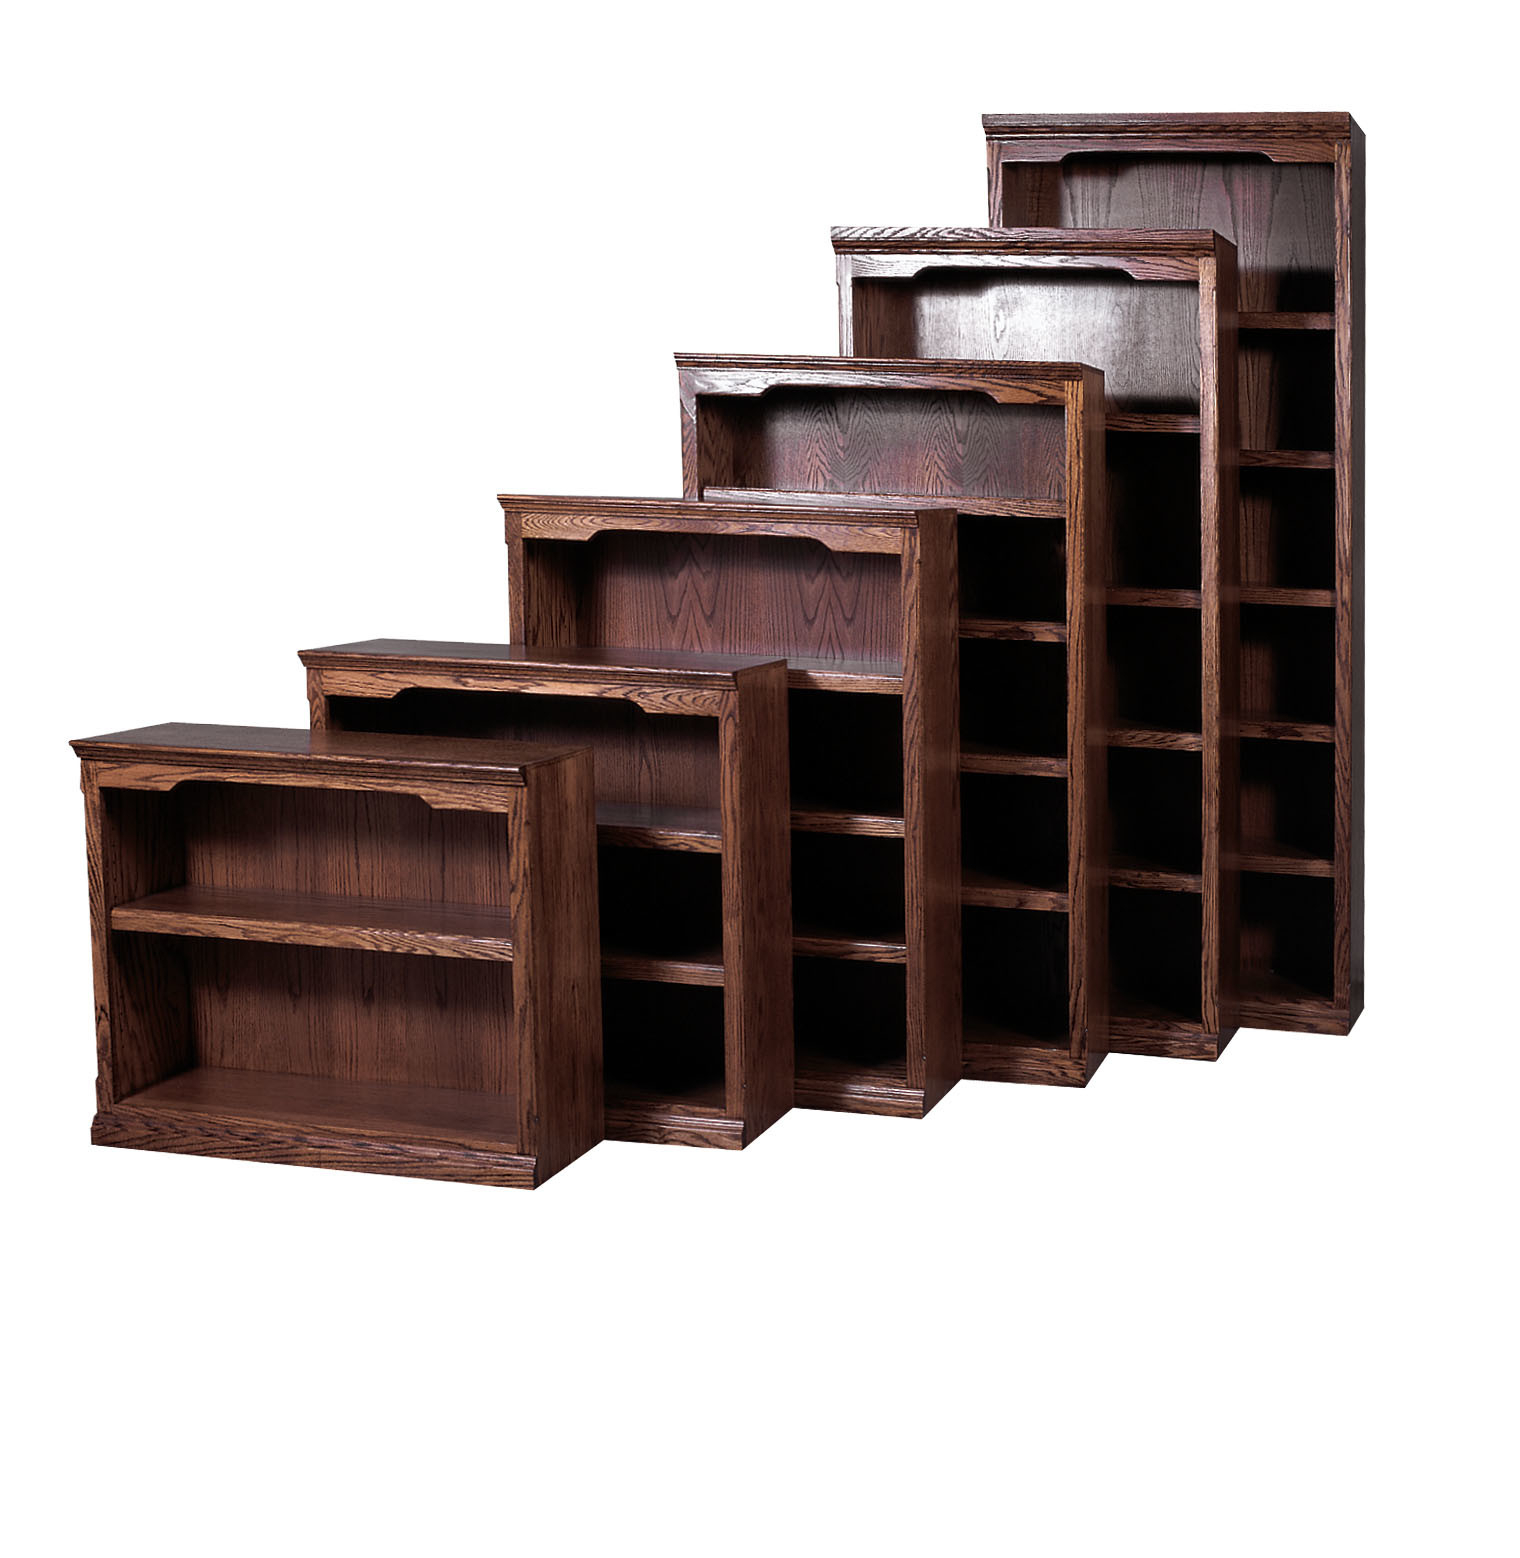 Widely Used Fresno Standard Bookcases Regarding Details About Loon Peak Kidd Standard Bookcase (View 20 of 20)